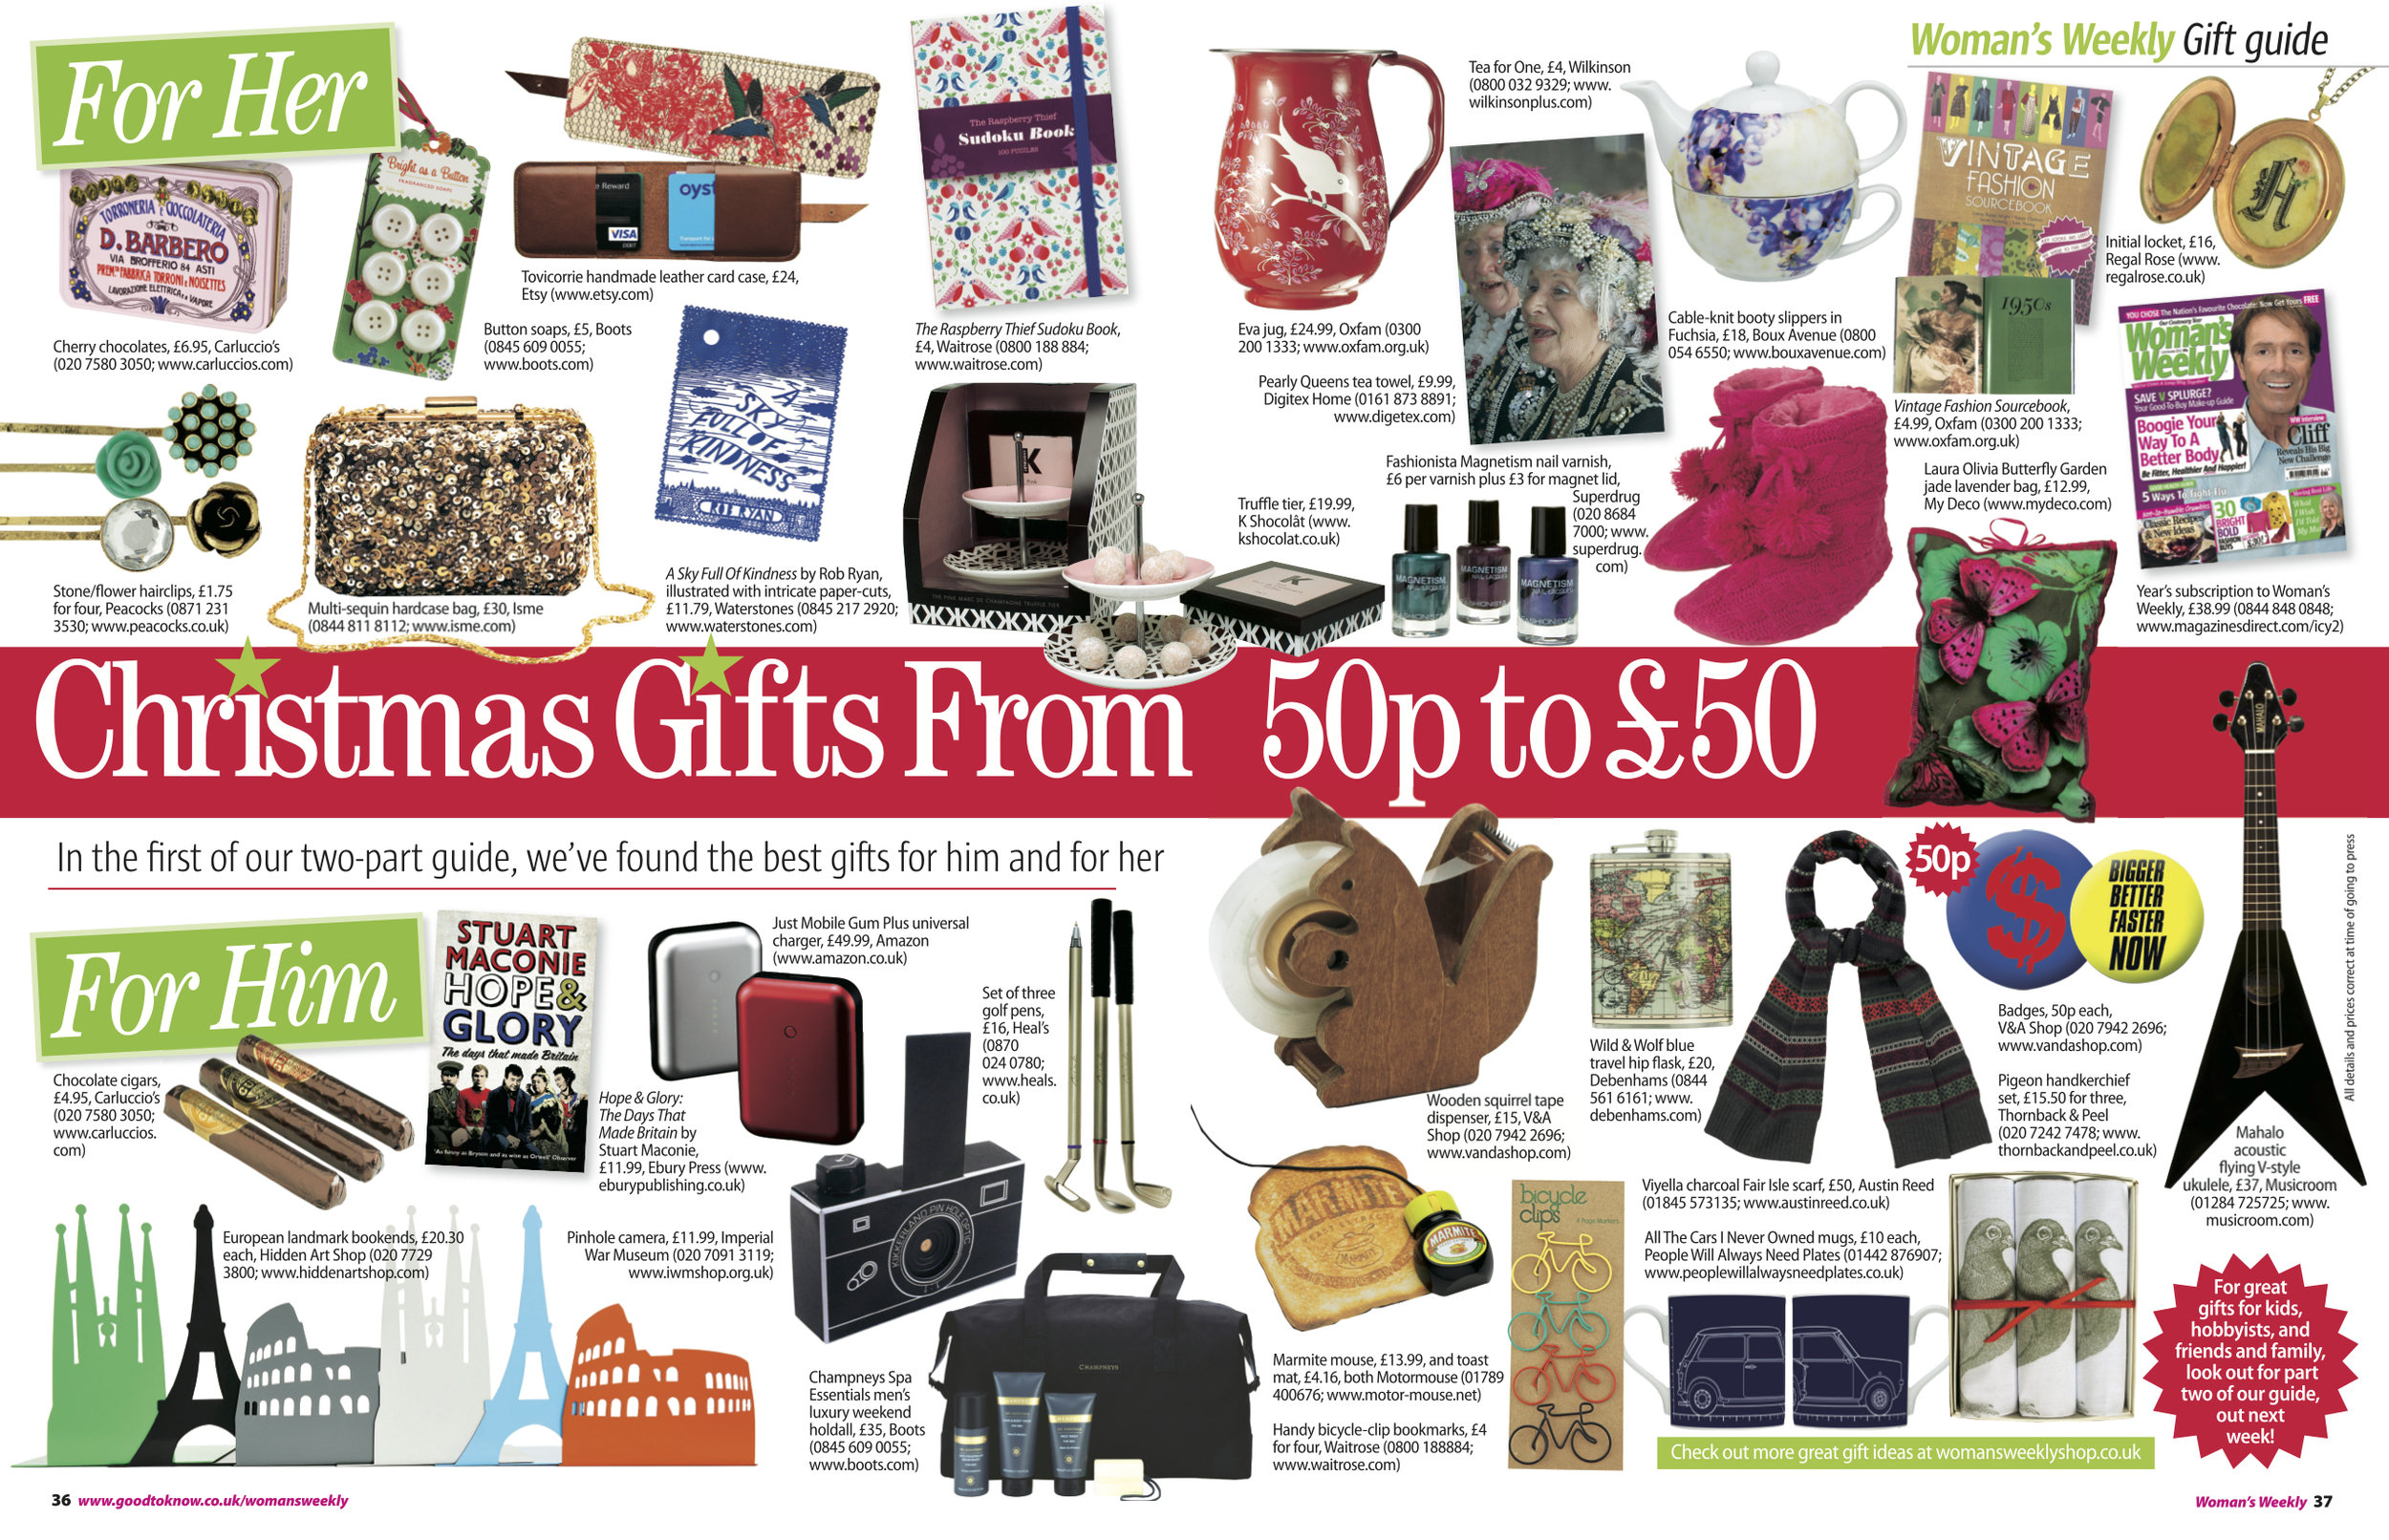 8. Woman's Weekly magazine Christmas Gift Guide feature Pt 1 Him & Her by Interior Stylist Joanna Thornhill.jpeg